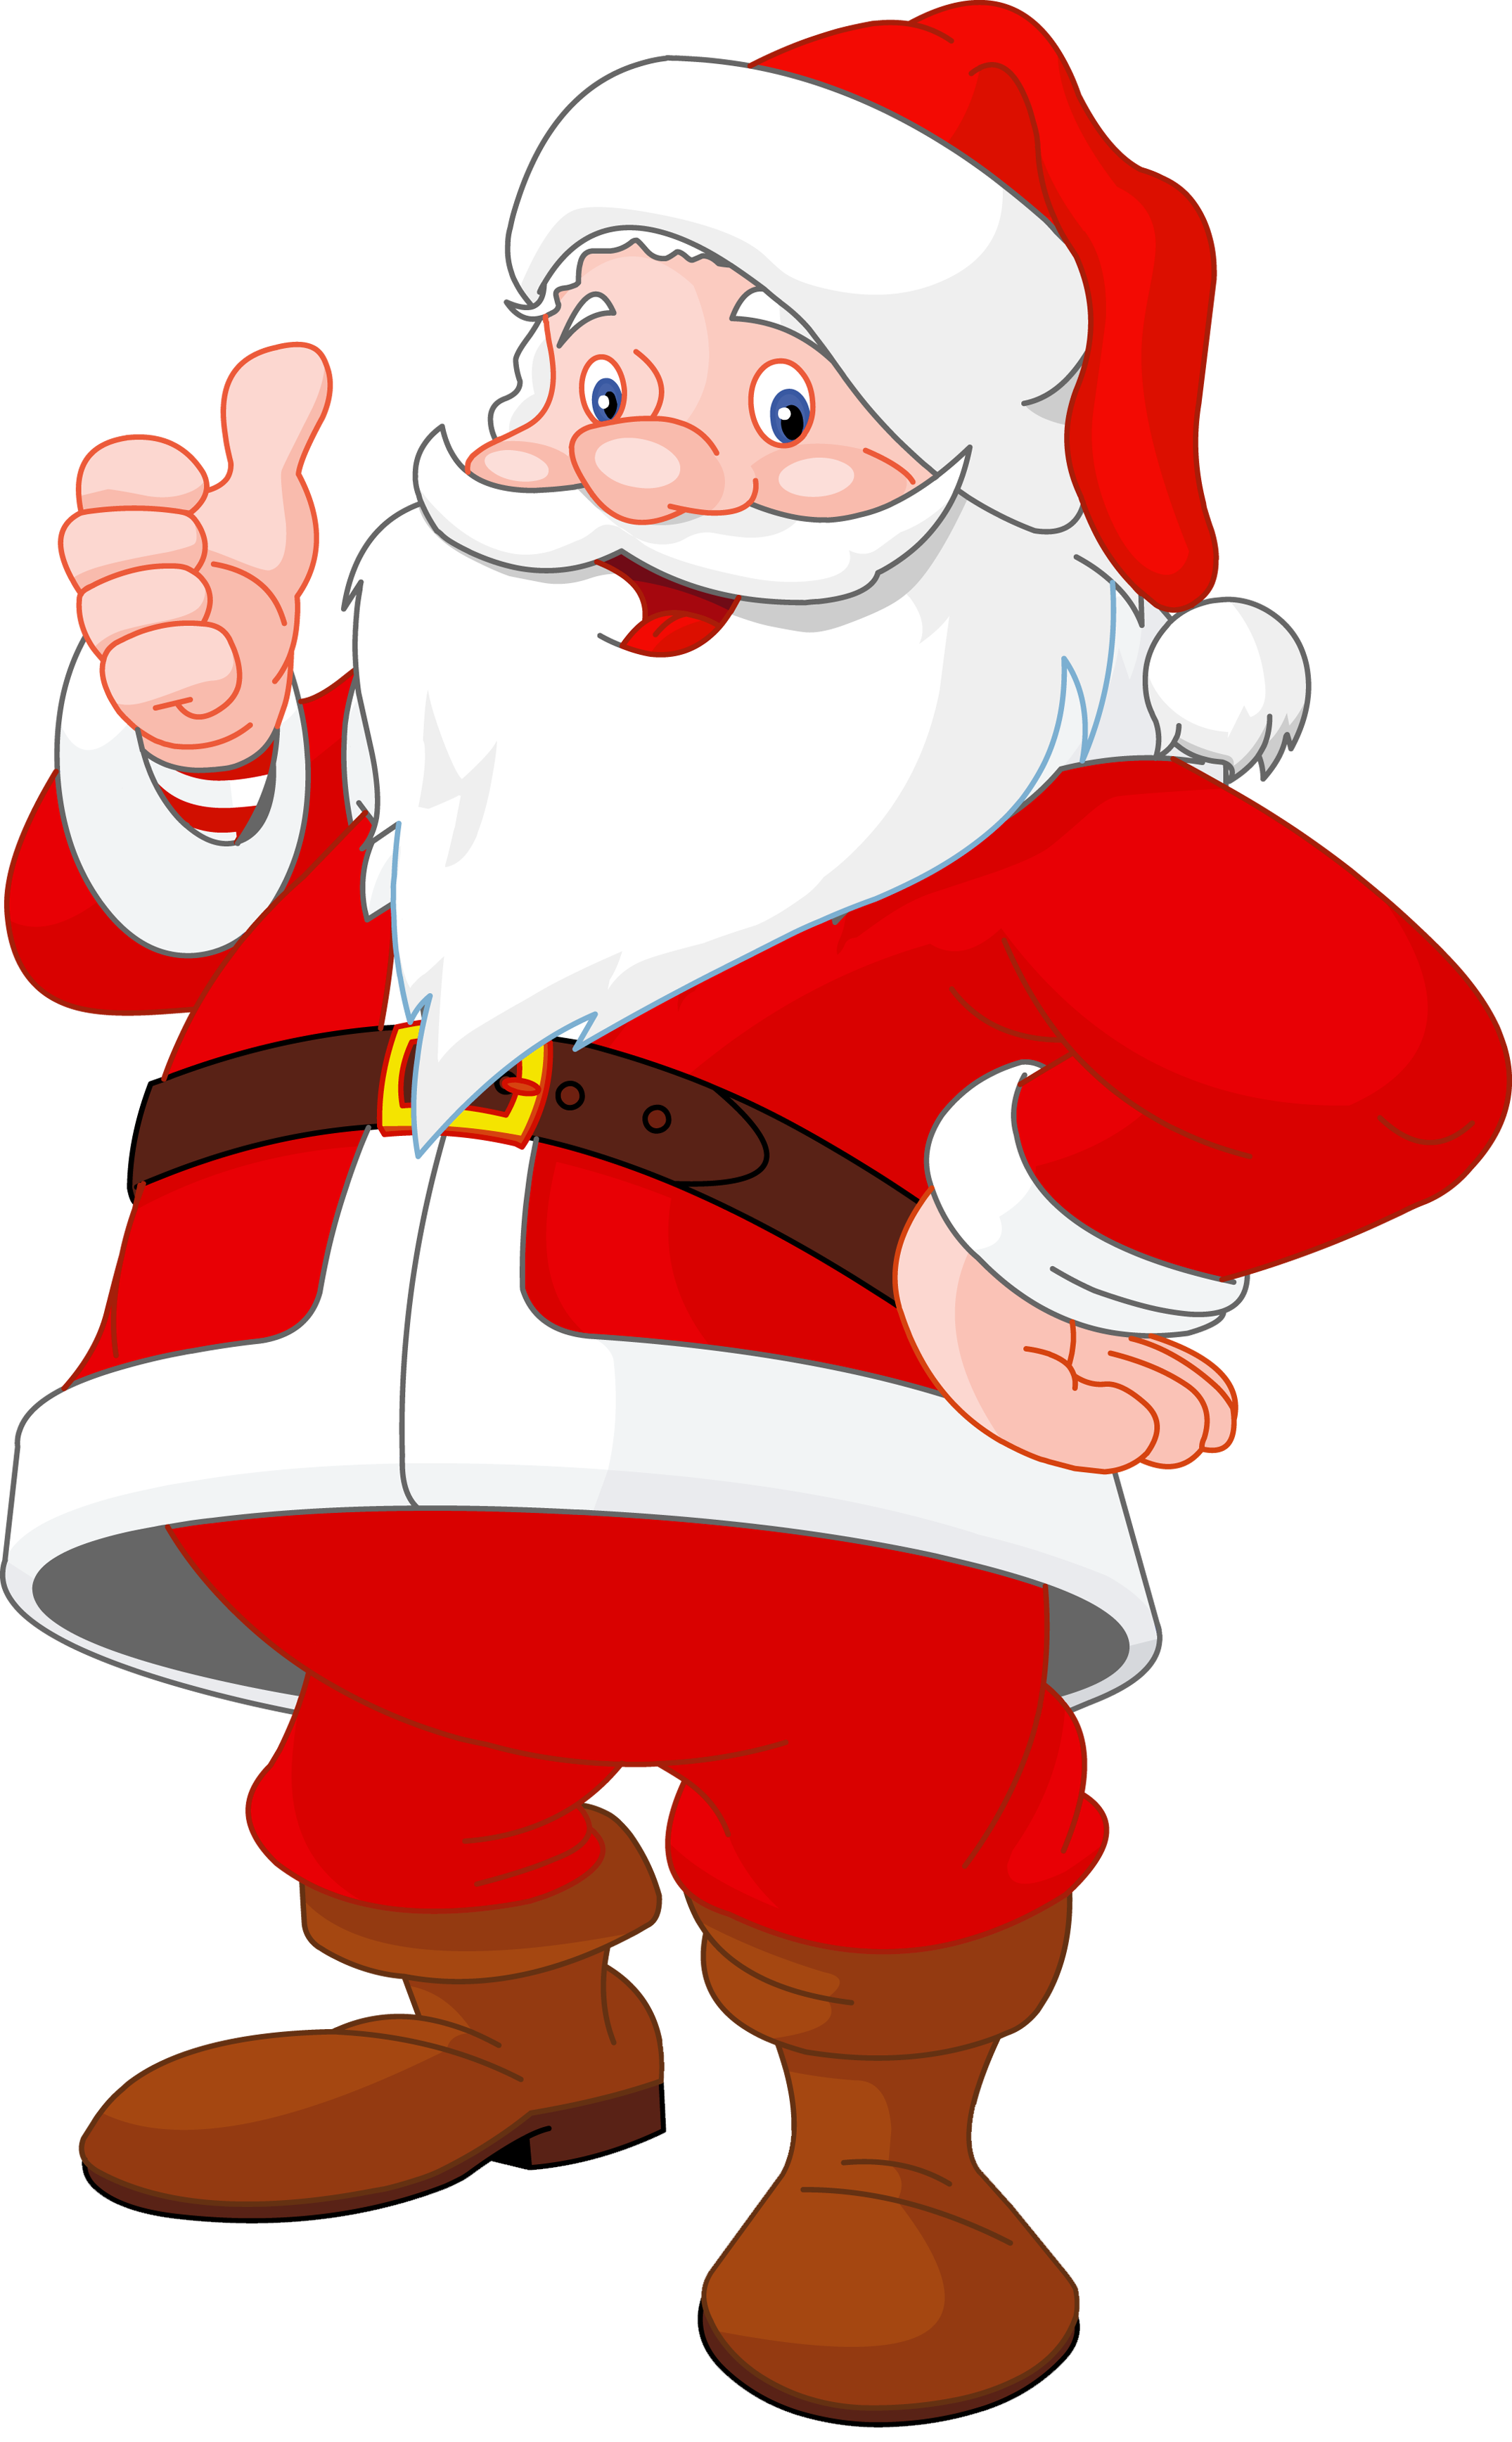 2016 clipart santa claus. With keith richards in